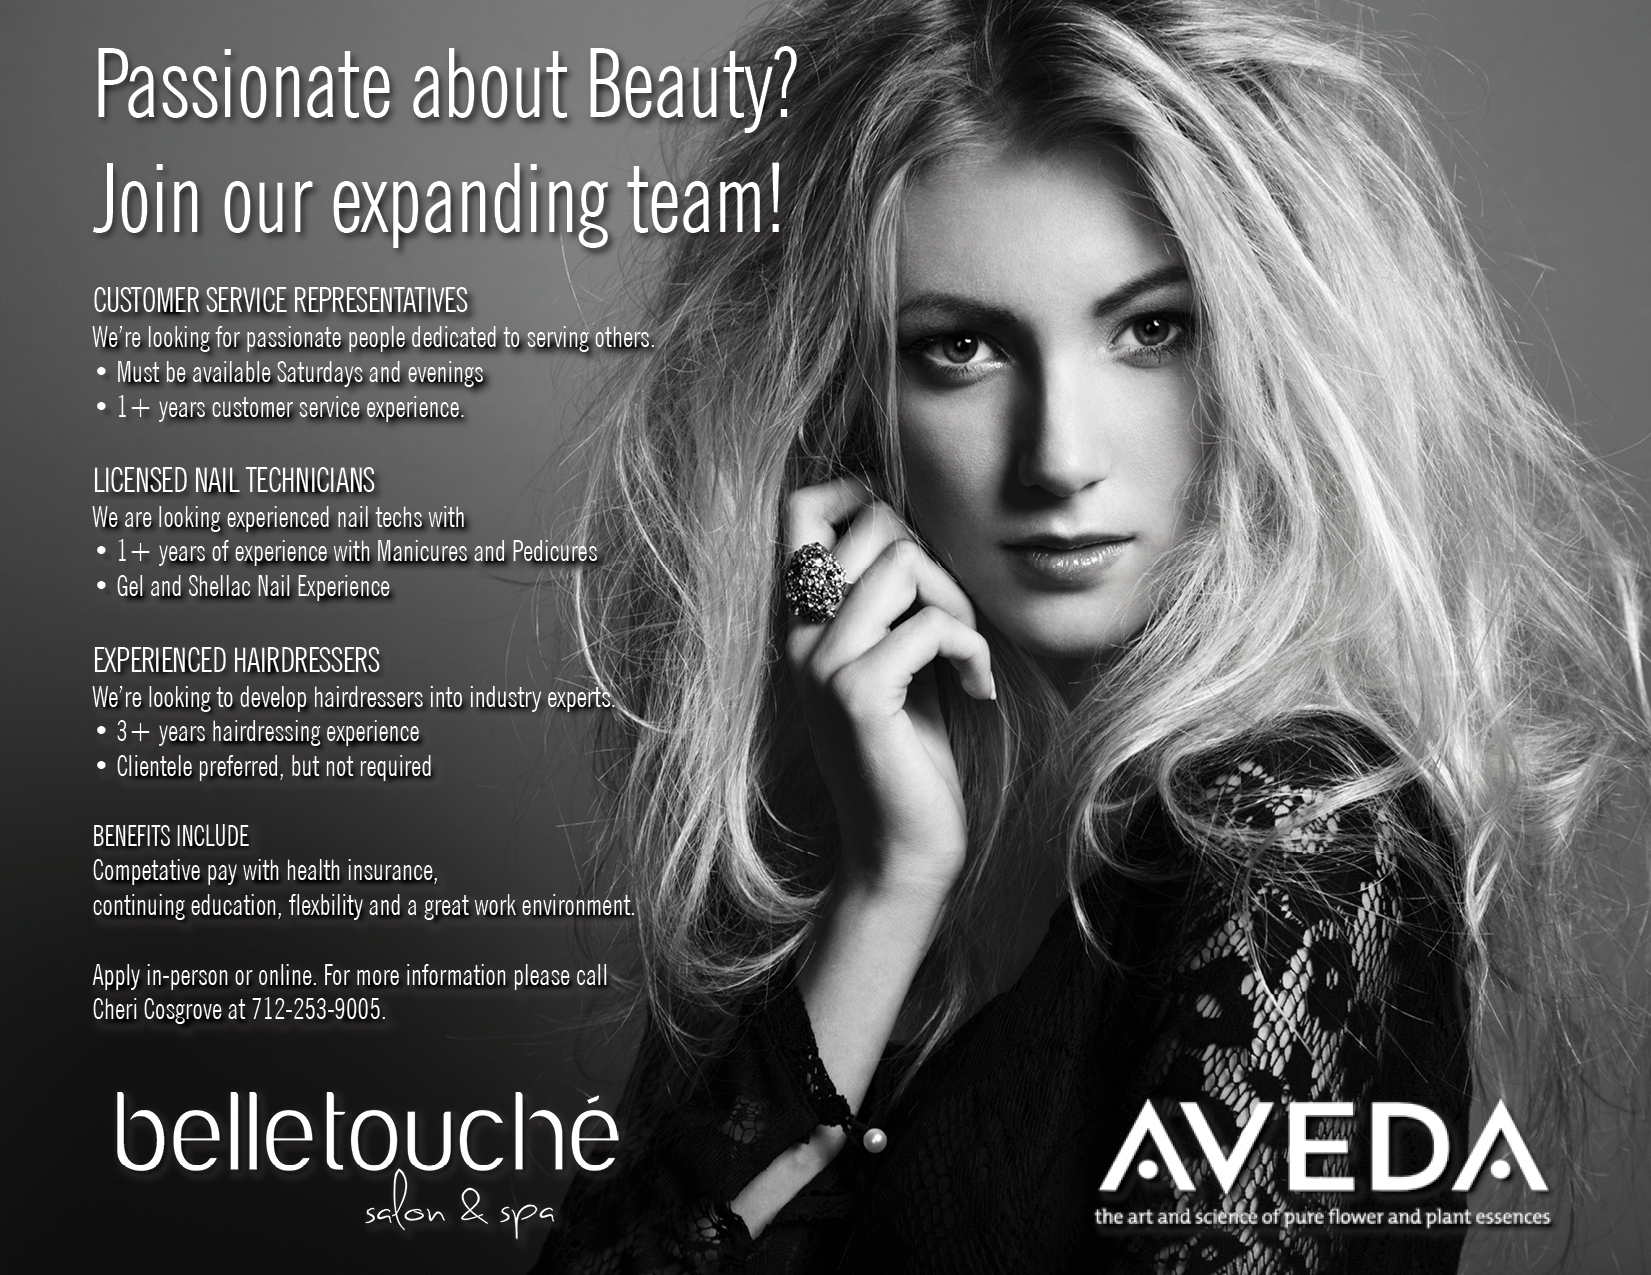 Looking for a fabulous spa or salon job? It begins with belle!